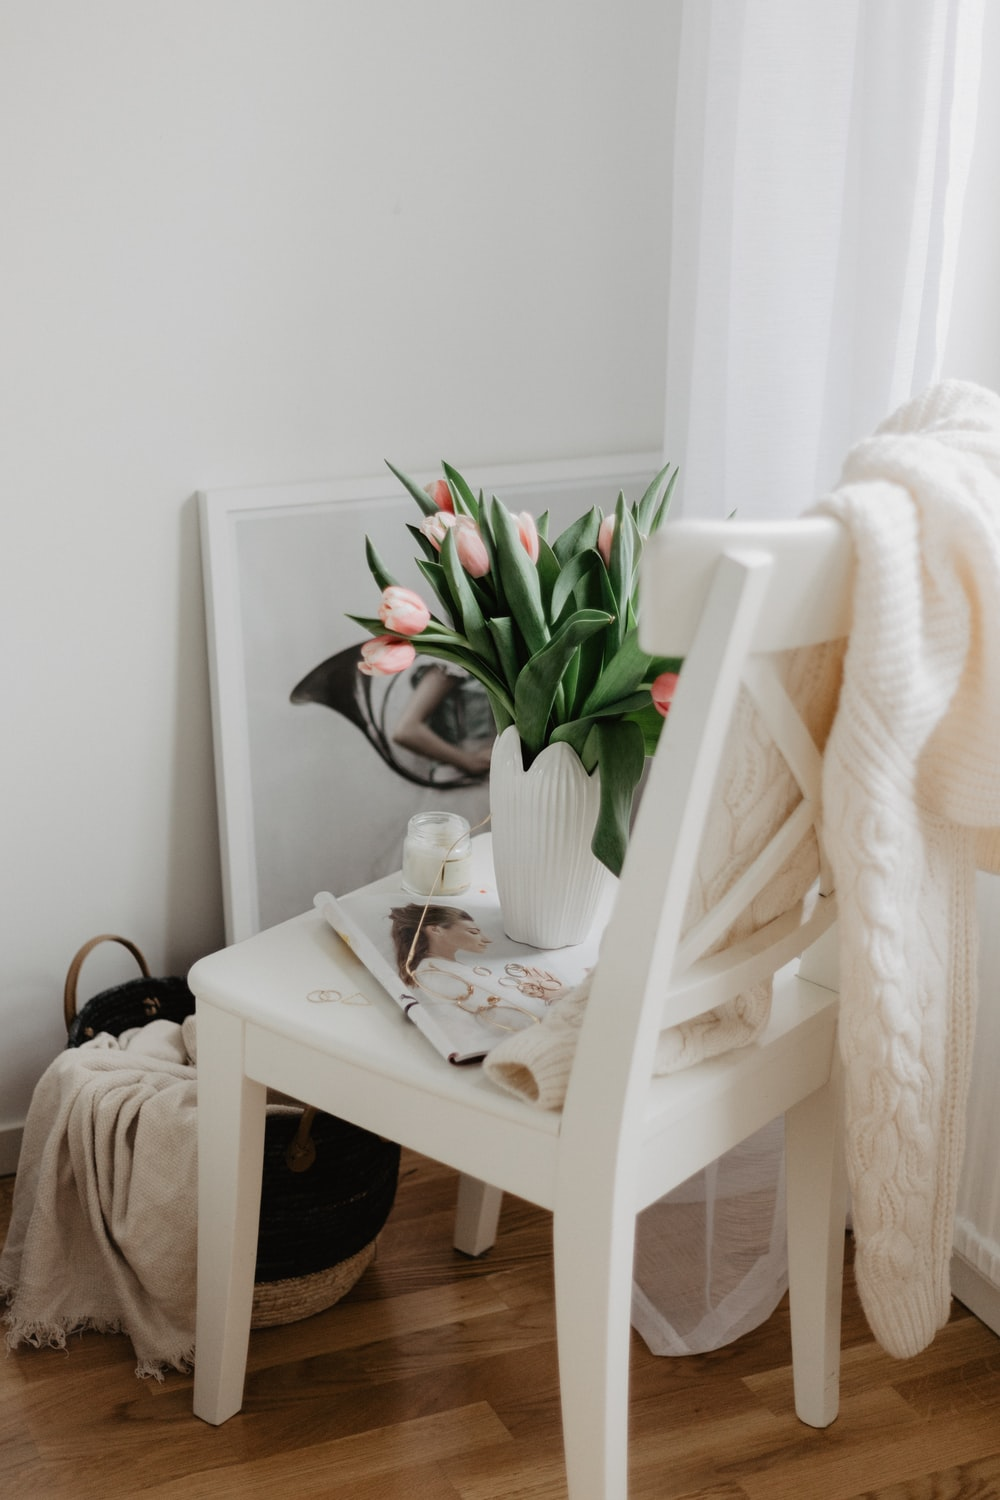 vase of tulips on chair